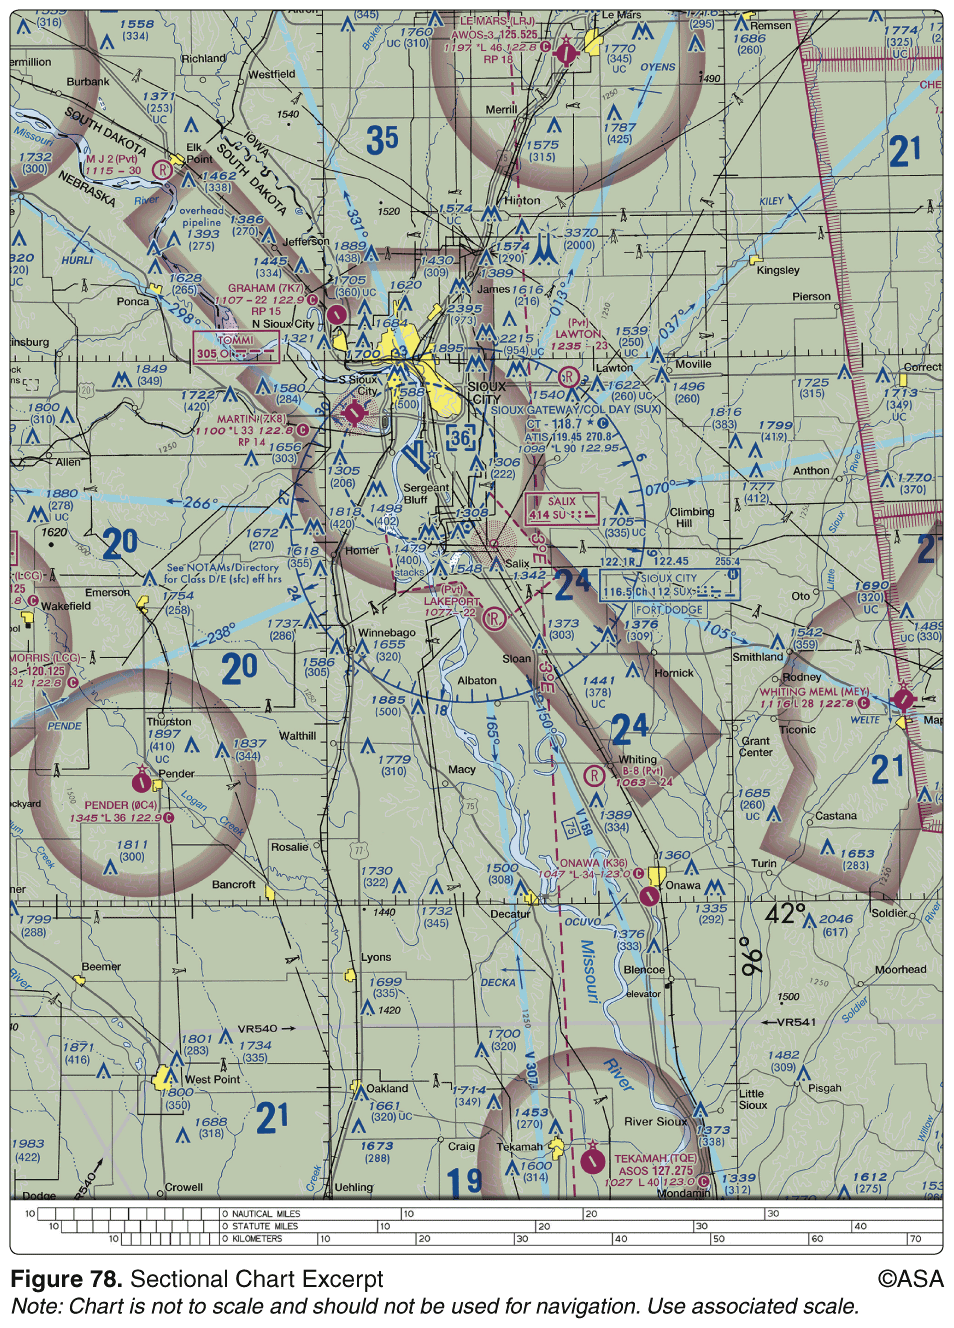 CFI Brief SUAS Operations And Airspace Learn To Fly Blog ASA - Class g airspace map